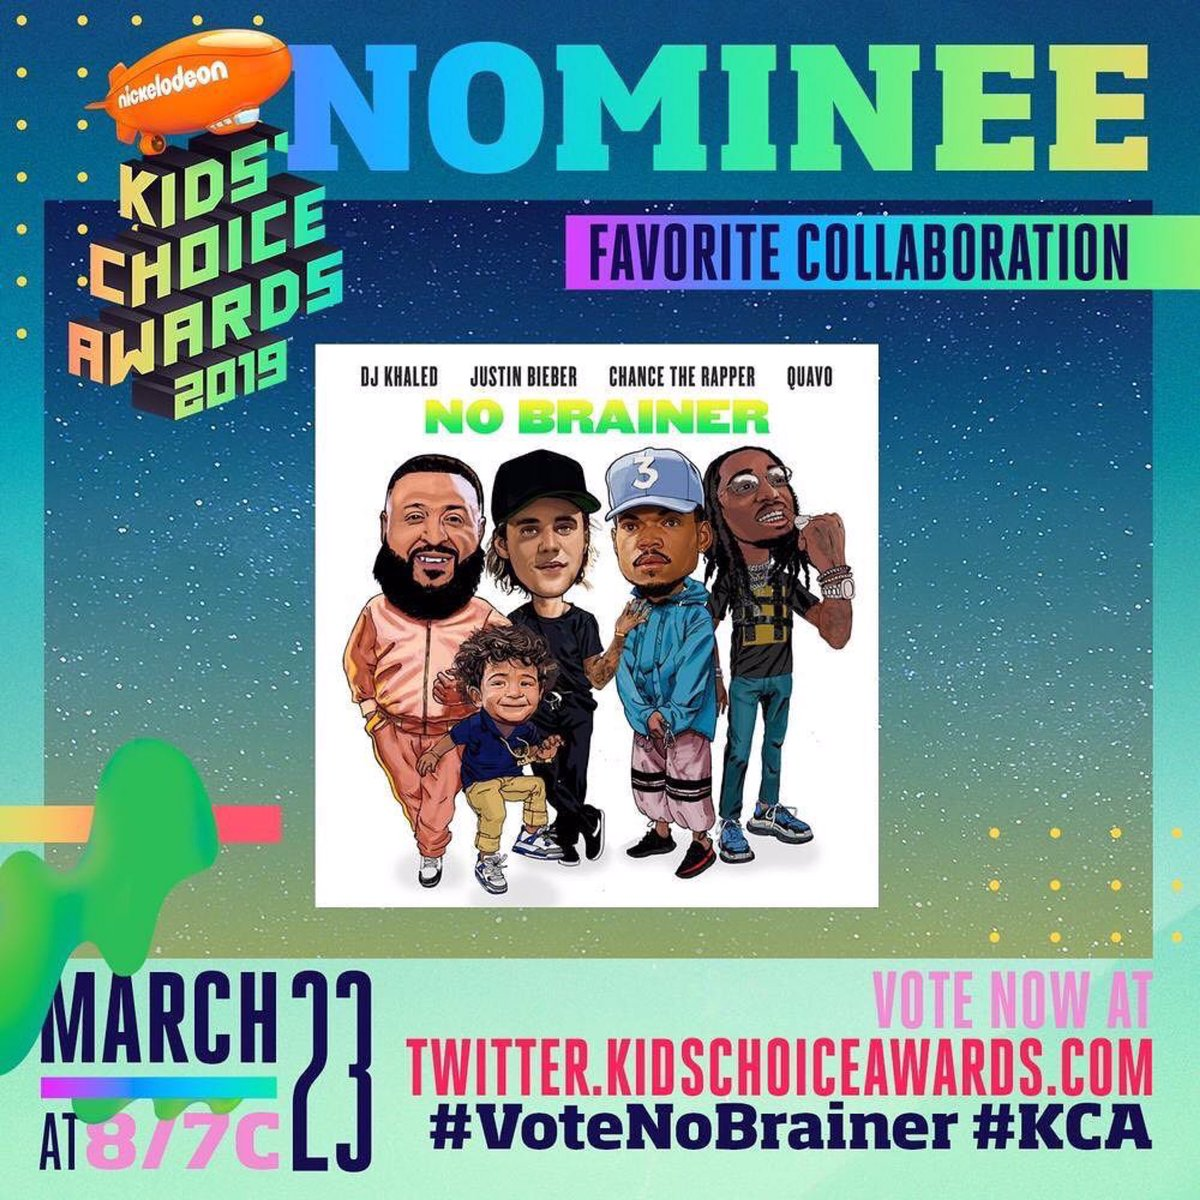 """""""No Brainer"""" by DJ Khaled featuring Justin Bieber, Chance The Rapper, and Quavo is nominated for Favorite Collaboration at the 2019 KCA's. Tweet and RT using the hashtags #VoteNoBrainer #KCA or online. Voting ends at 12pm EDT on Friday, March 22nd.<br>http://pic.twitter.com/cbvAWioUY8"""